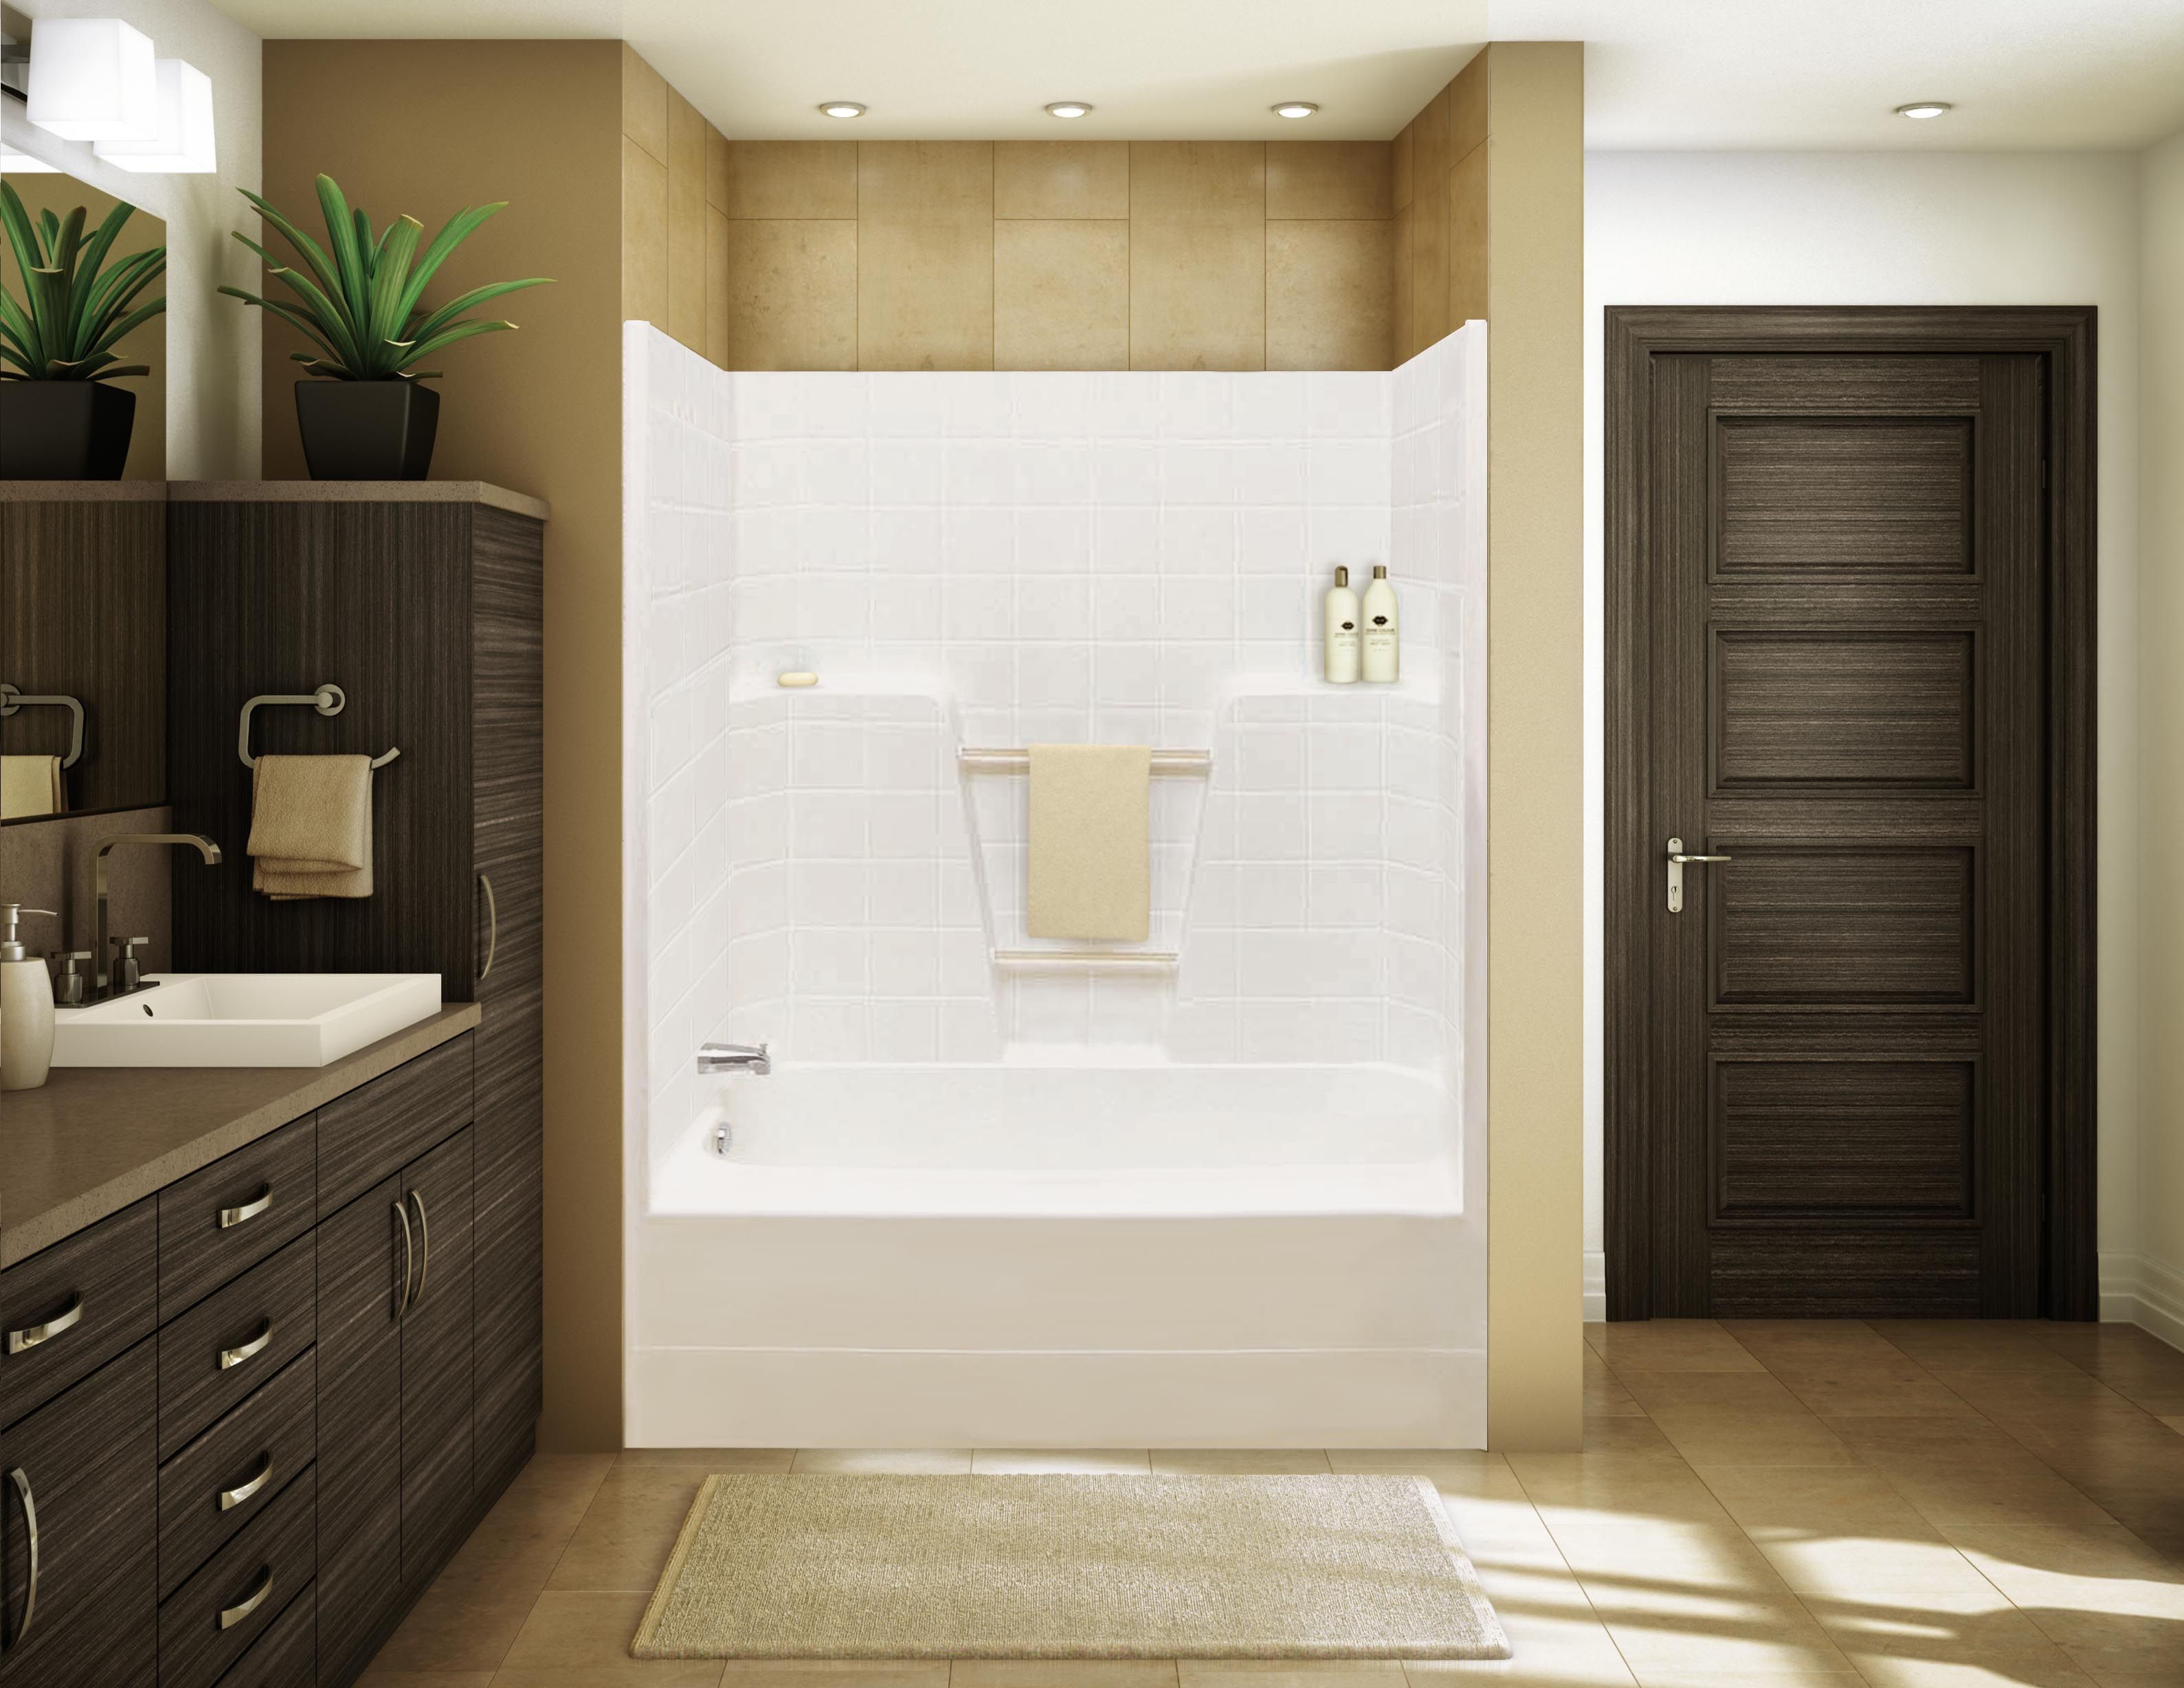 install surround tub tuxedo of couches bathroom ideas shower for design faucet types classic sofa sofas brass and bathtub surrounds styles fiberglass replacement